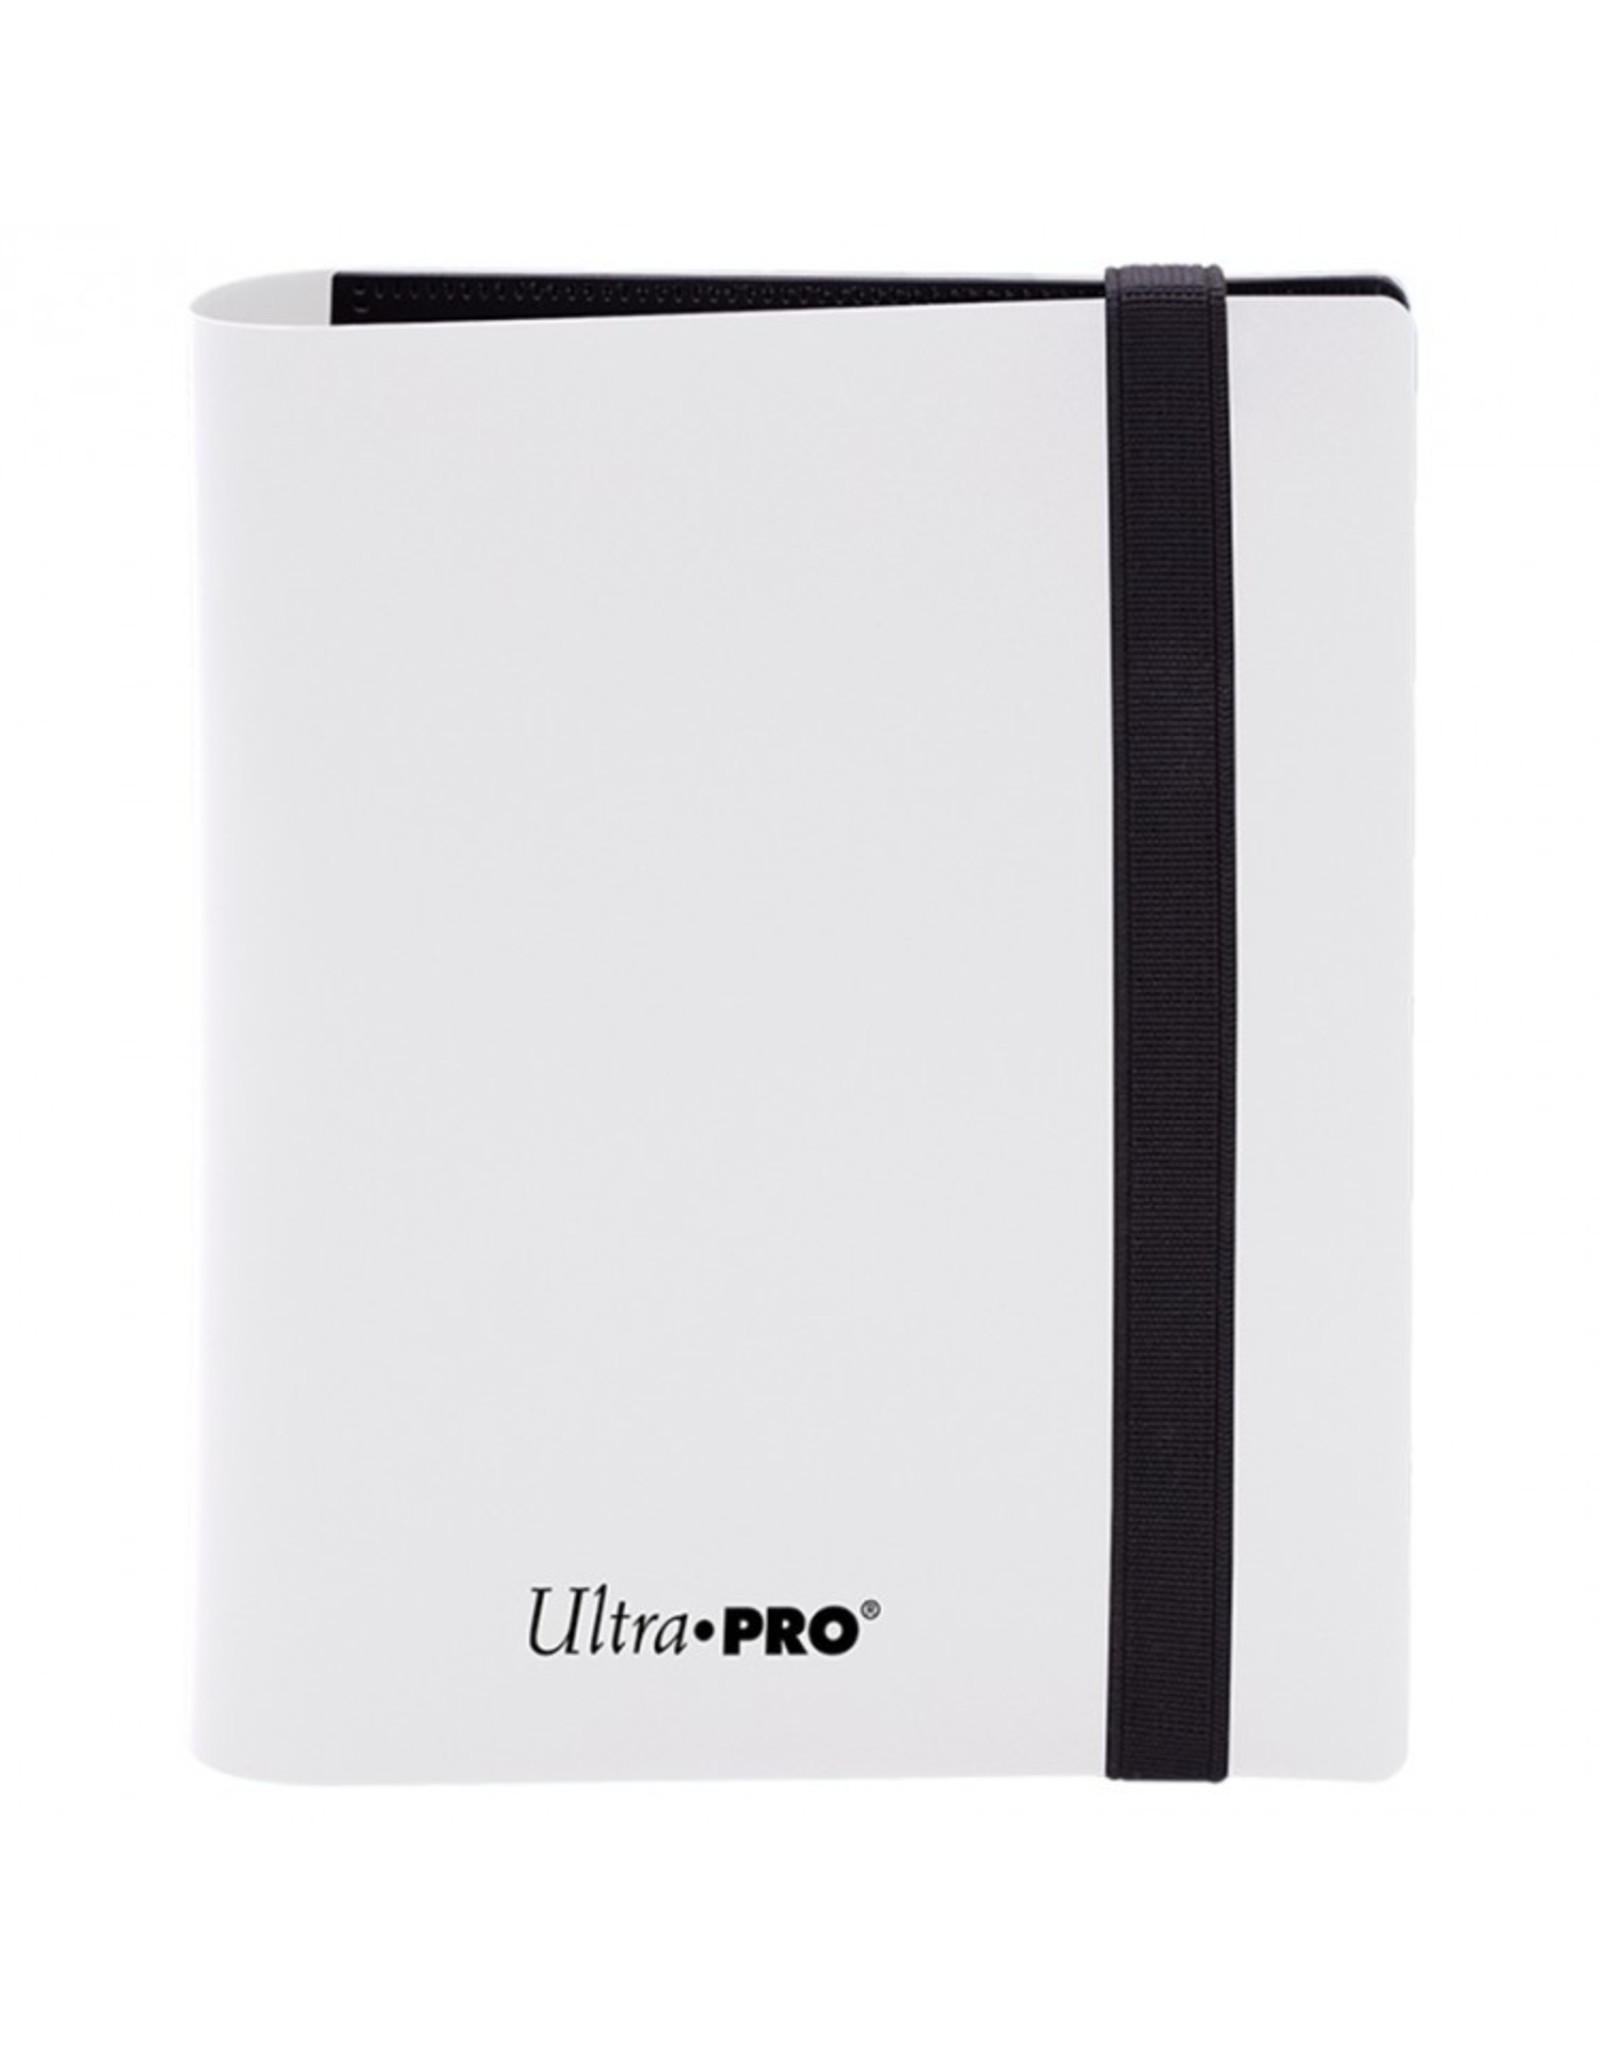 Ultra Pro Binder: 4pkt: PRO: Eclipse: Arctic WH